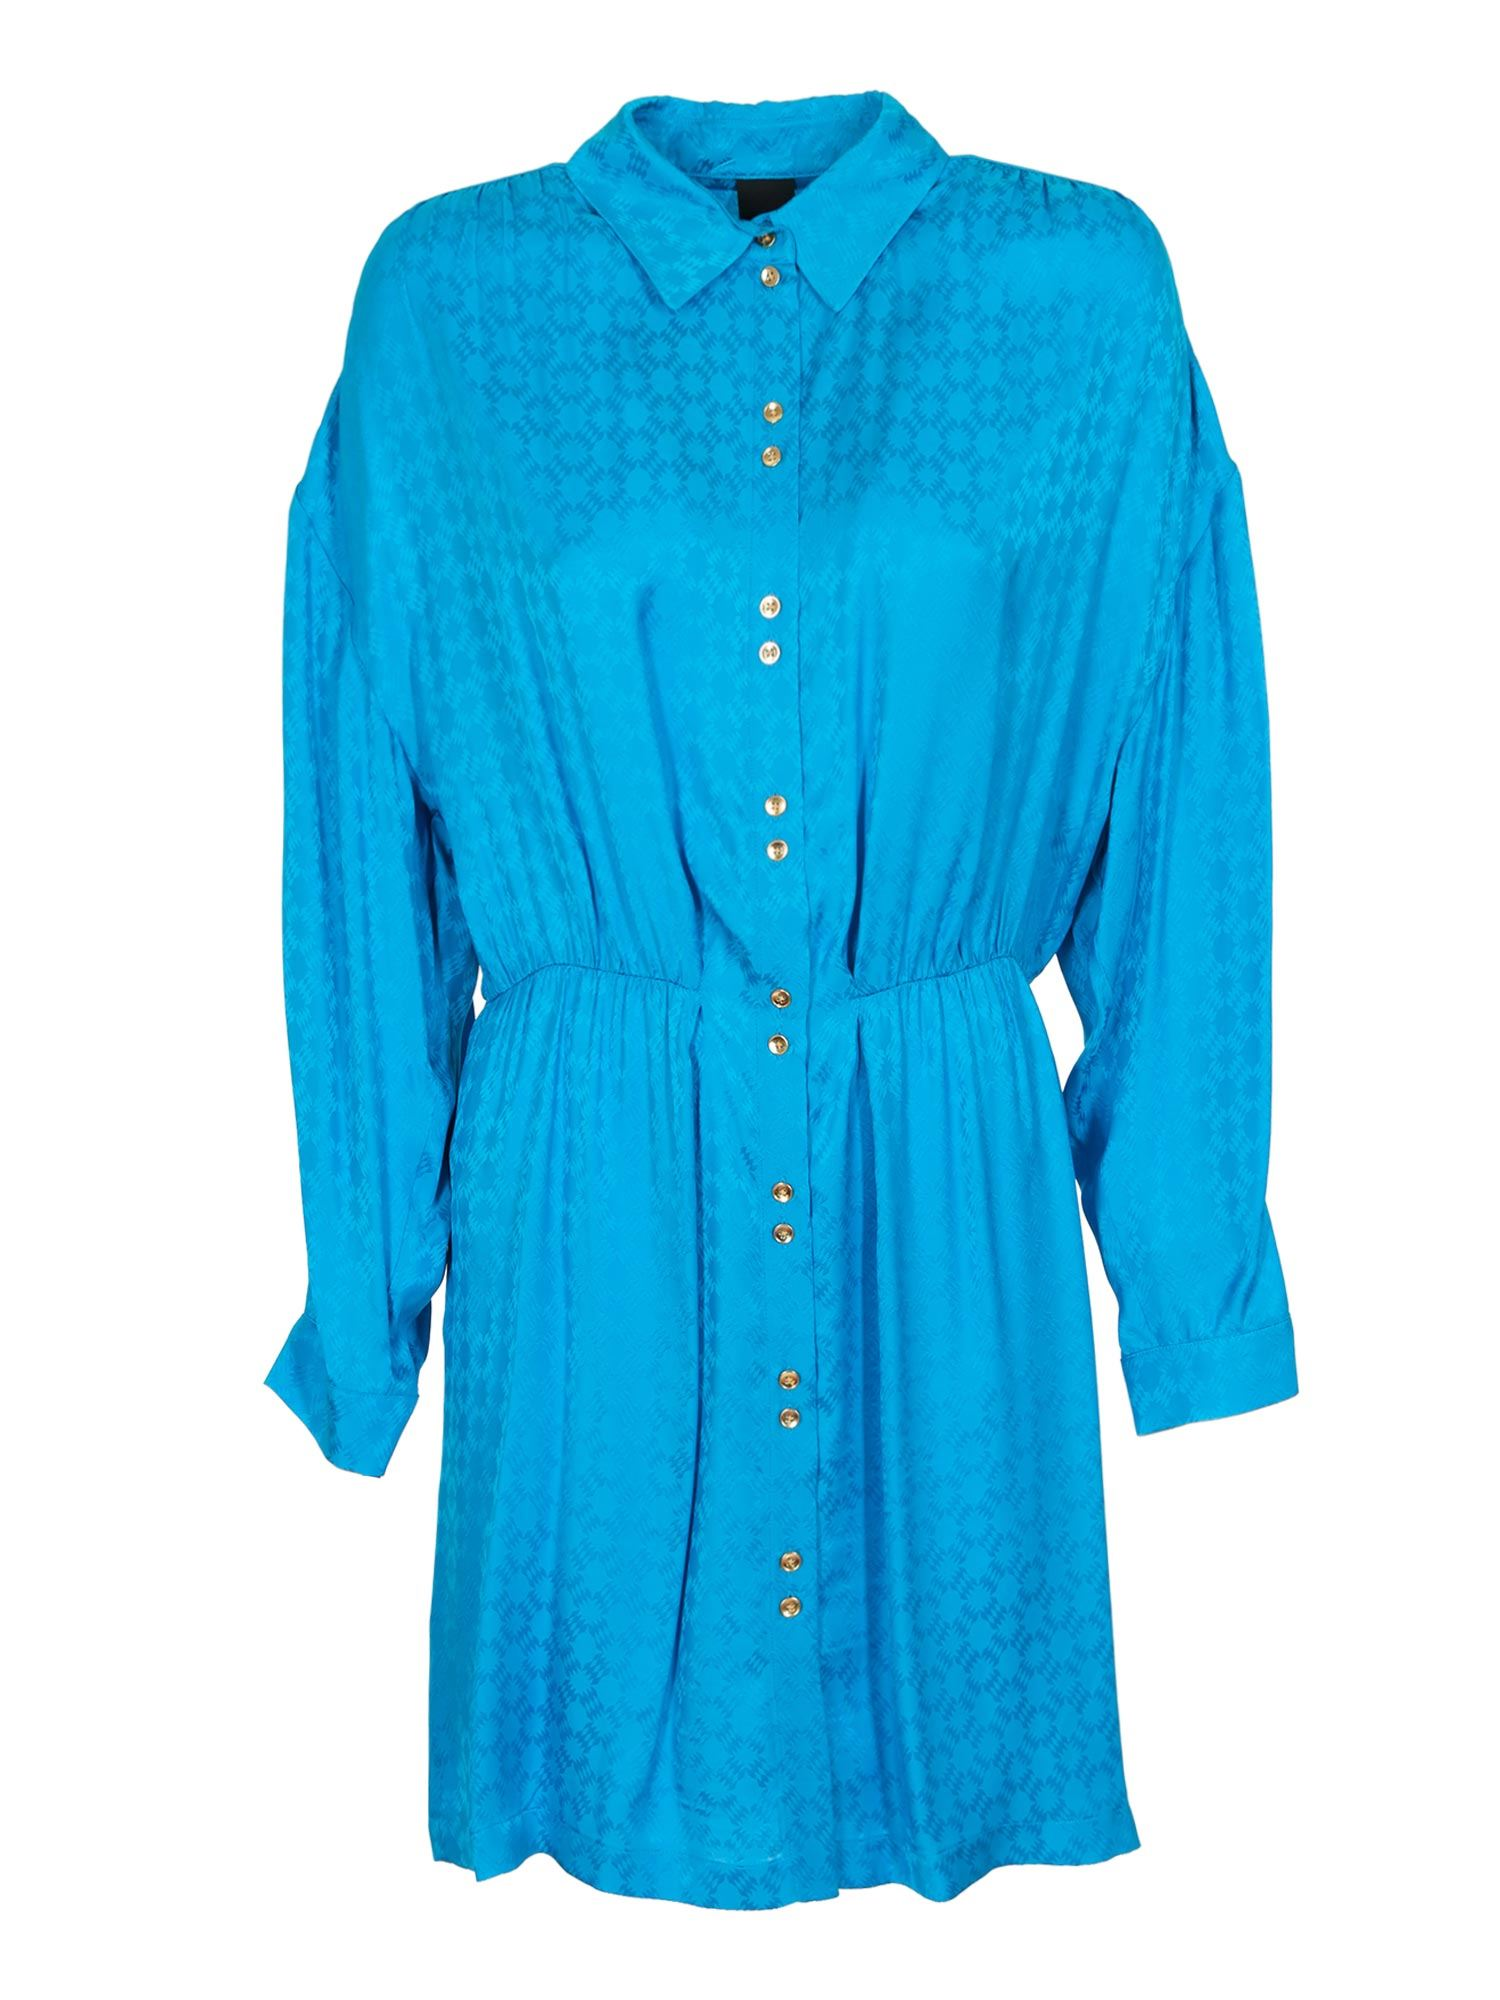 Pinko PINKO DEGNO DRESS IN BLUE